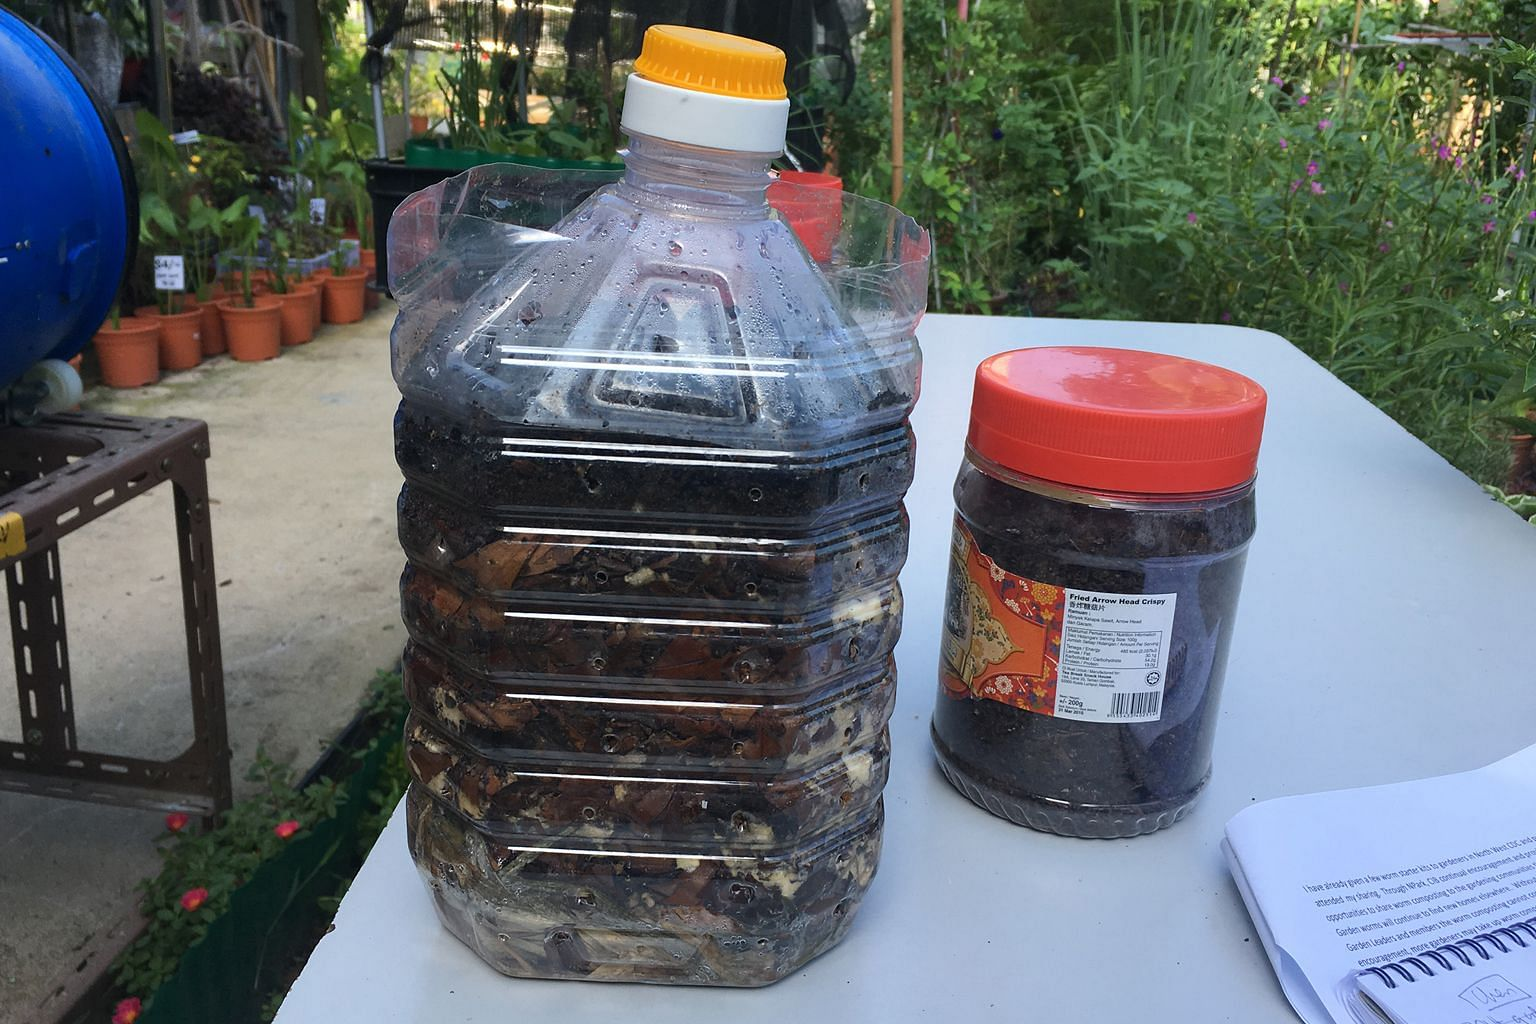 Coffee grounds (above, right) are needed for making compost, which you can keep in a 5-litre plastic container (above, left).